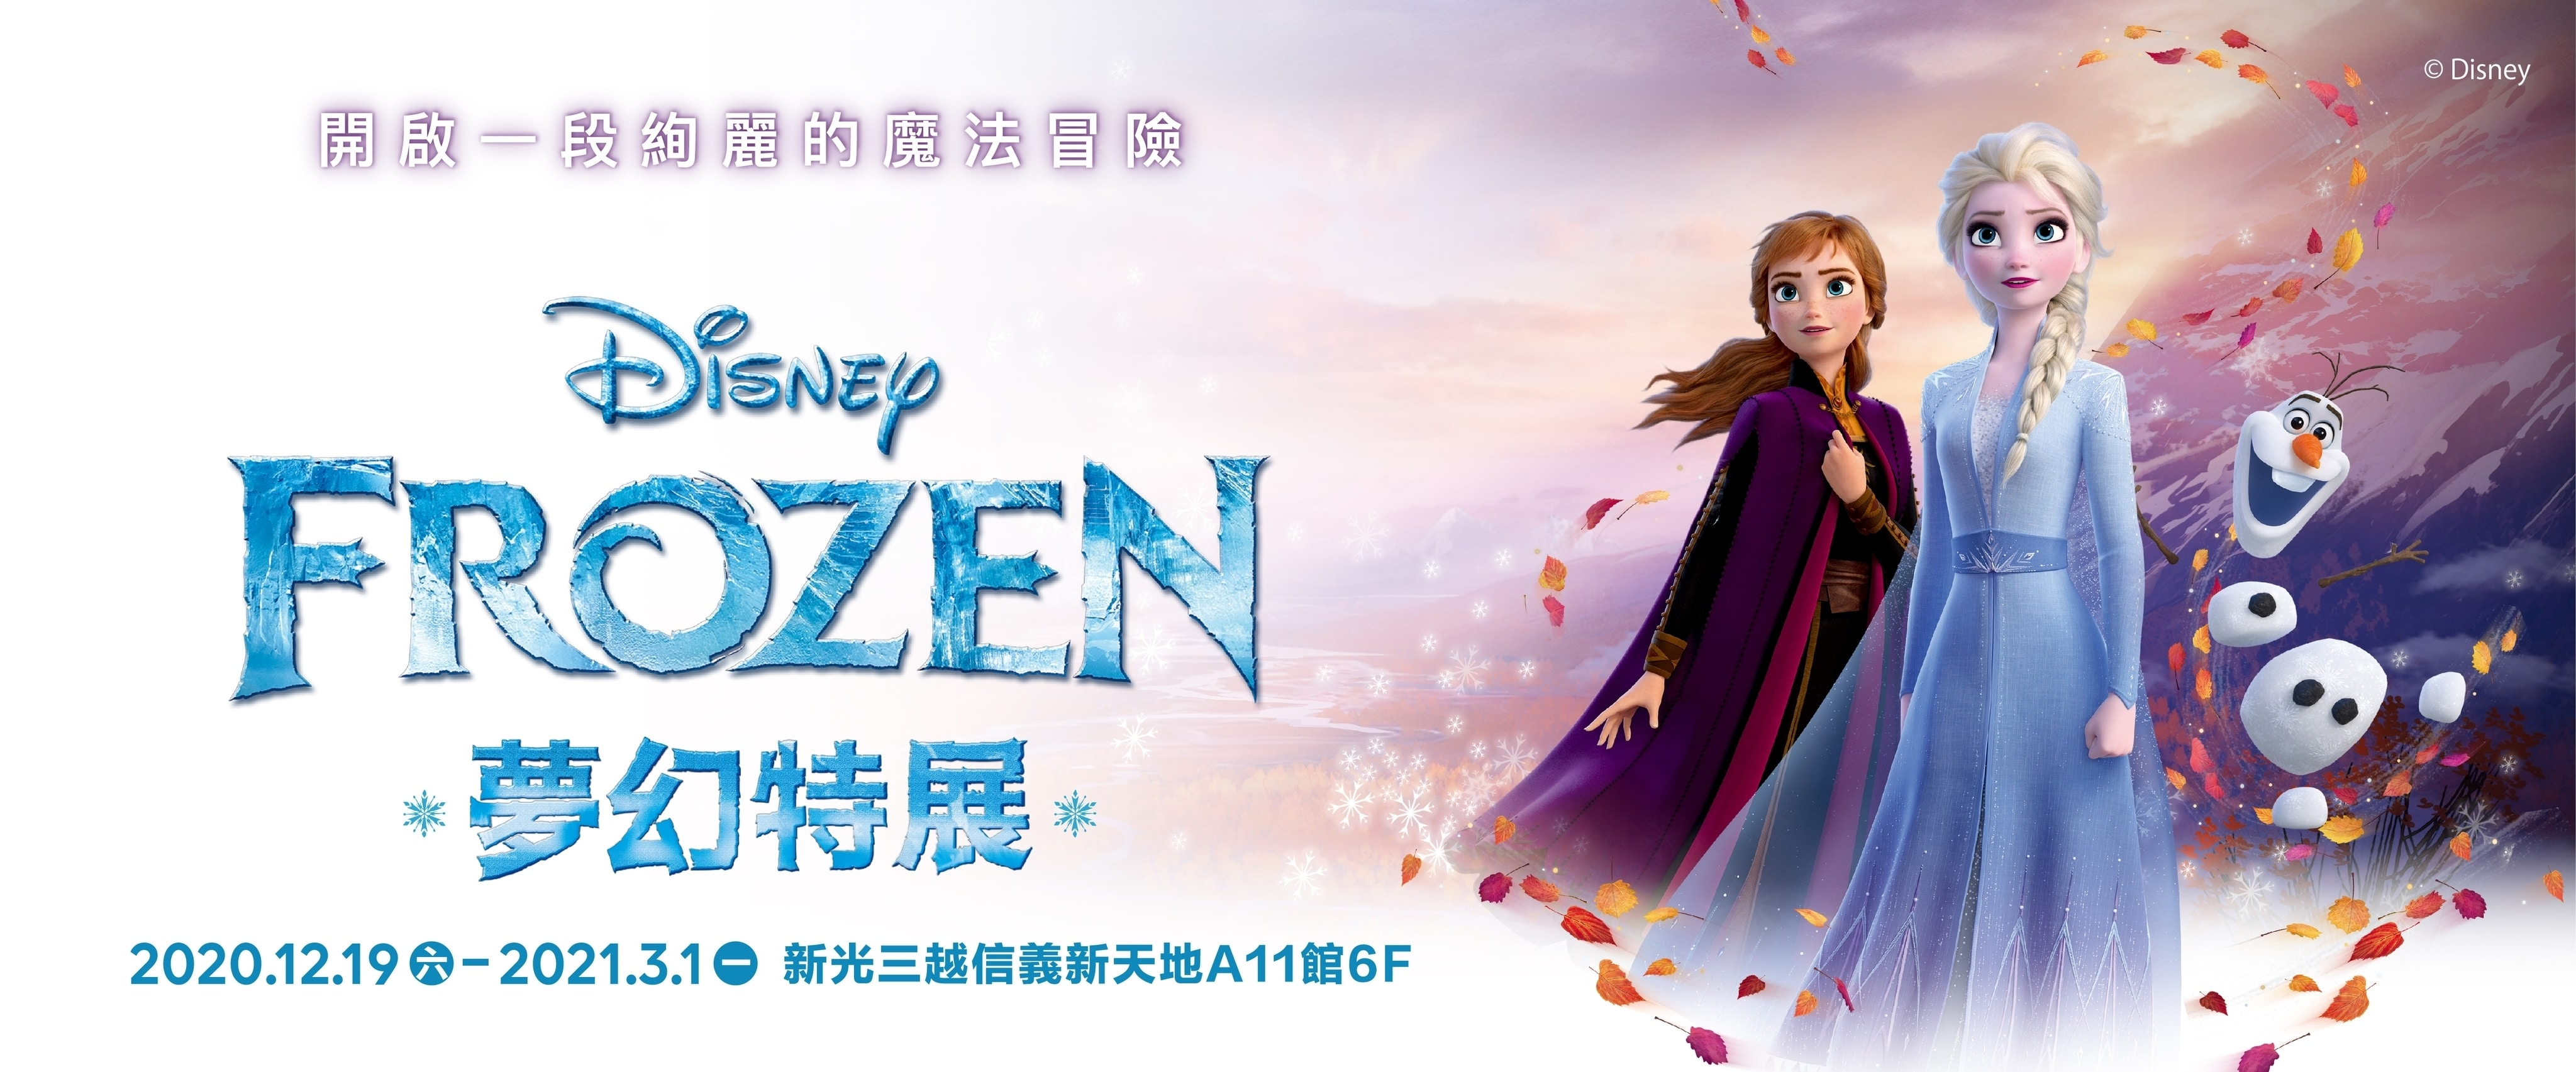 Frozen Exhibition